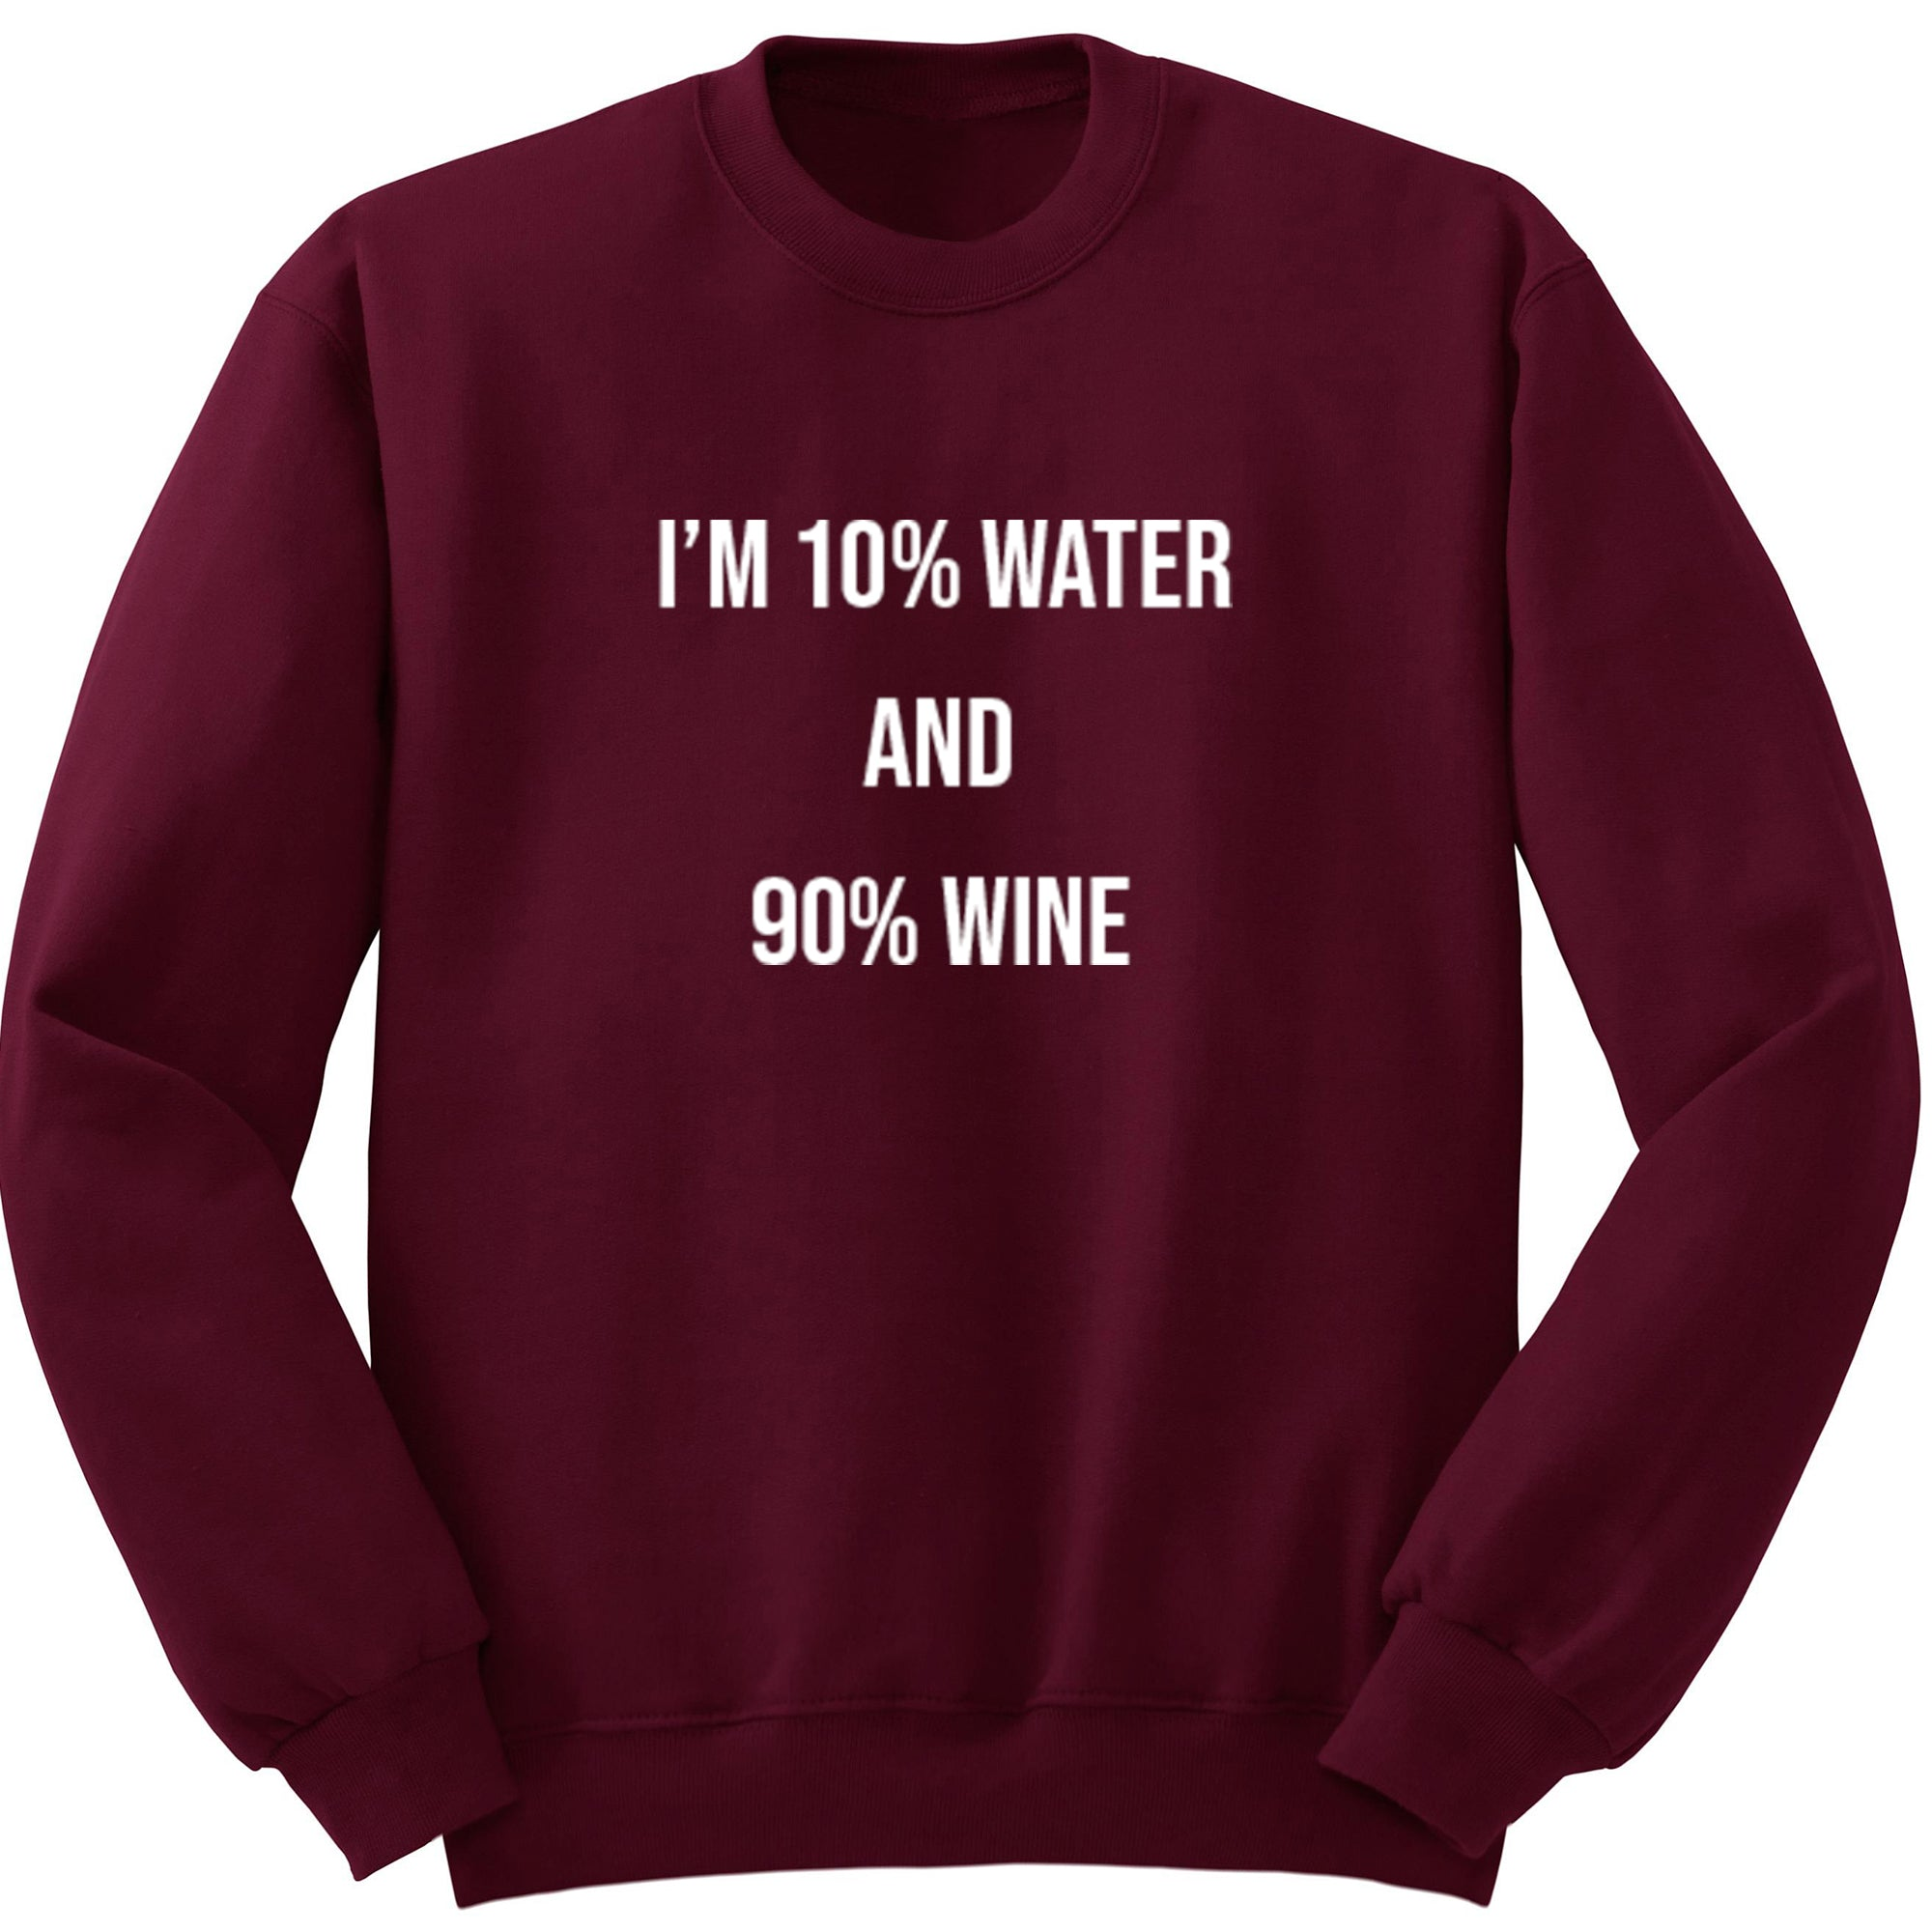 I'm 10% Water And 90% Wine Unisex Jumper S0498 - Illustrated Identity Ltd.